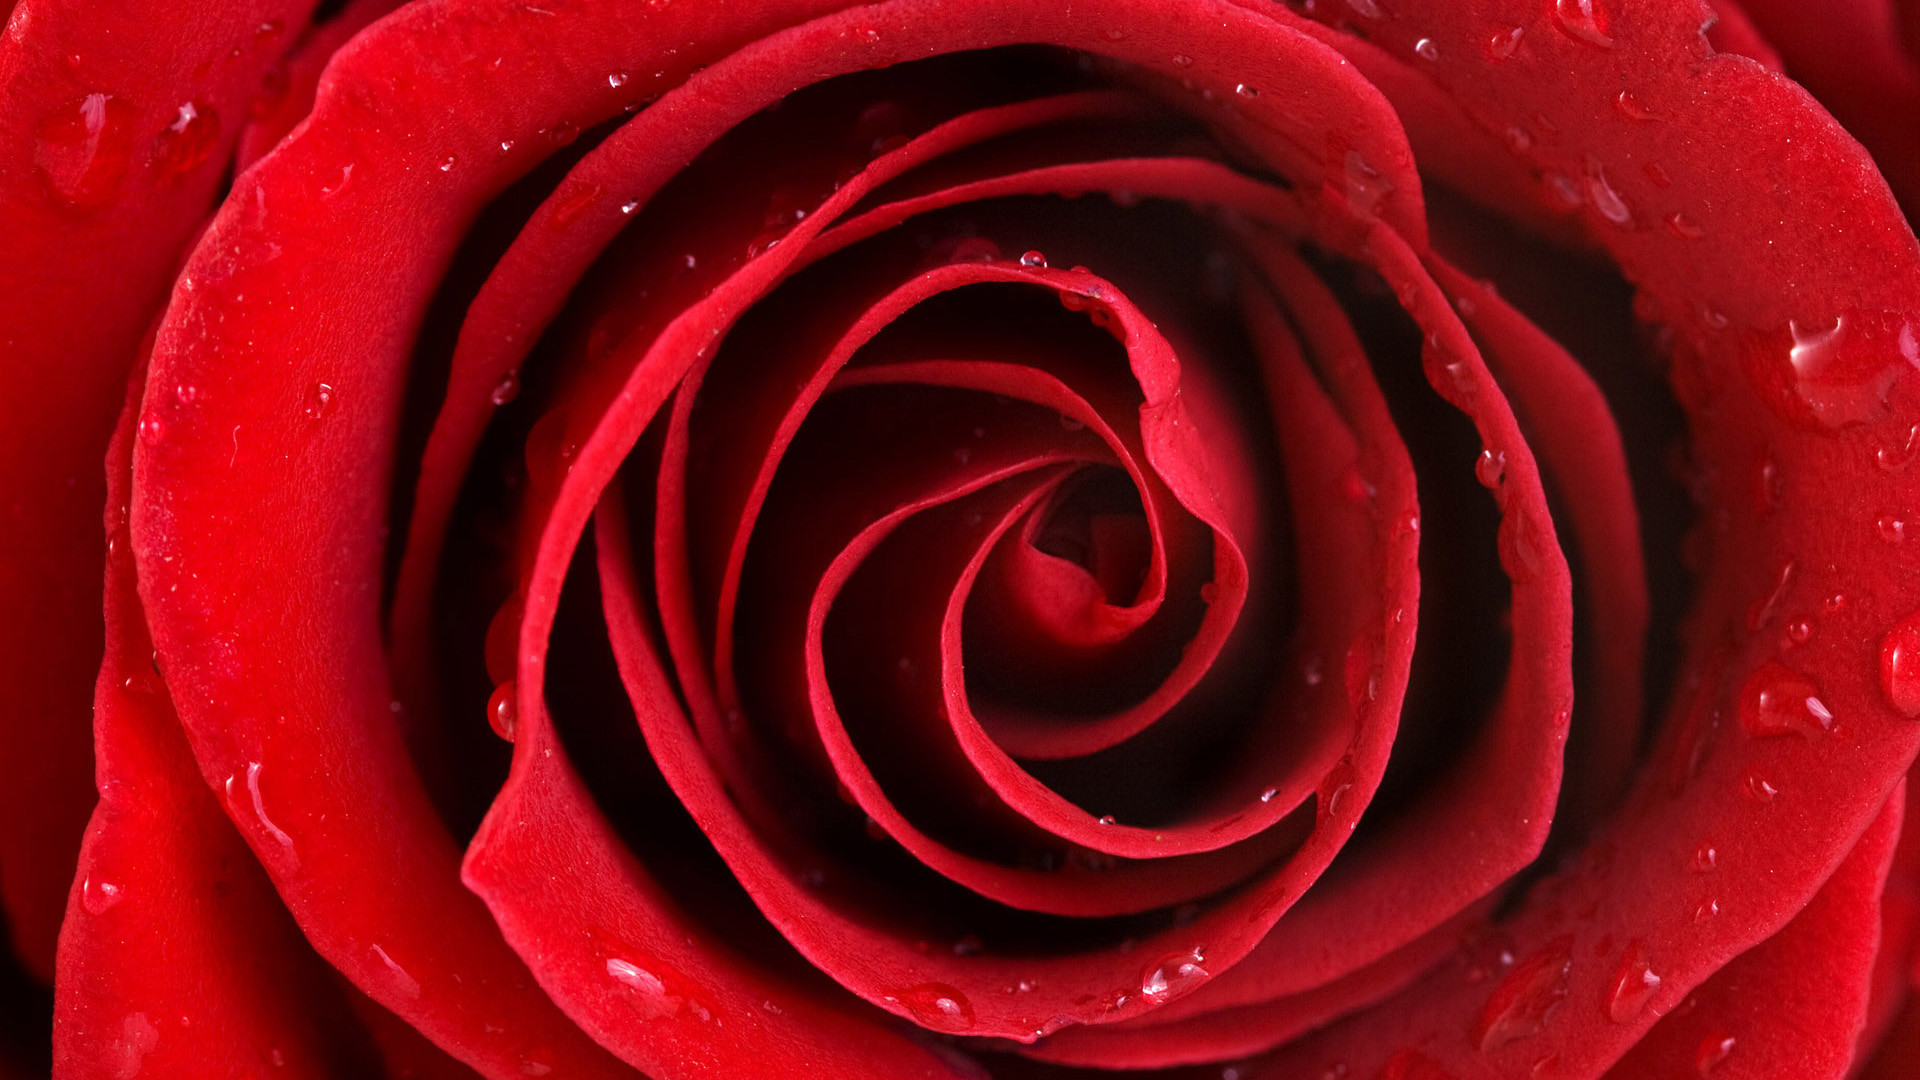 1920x1080 Red roses PNG Wallpapers, Rose Flower images, Rose Pictures and ... src